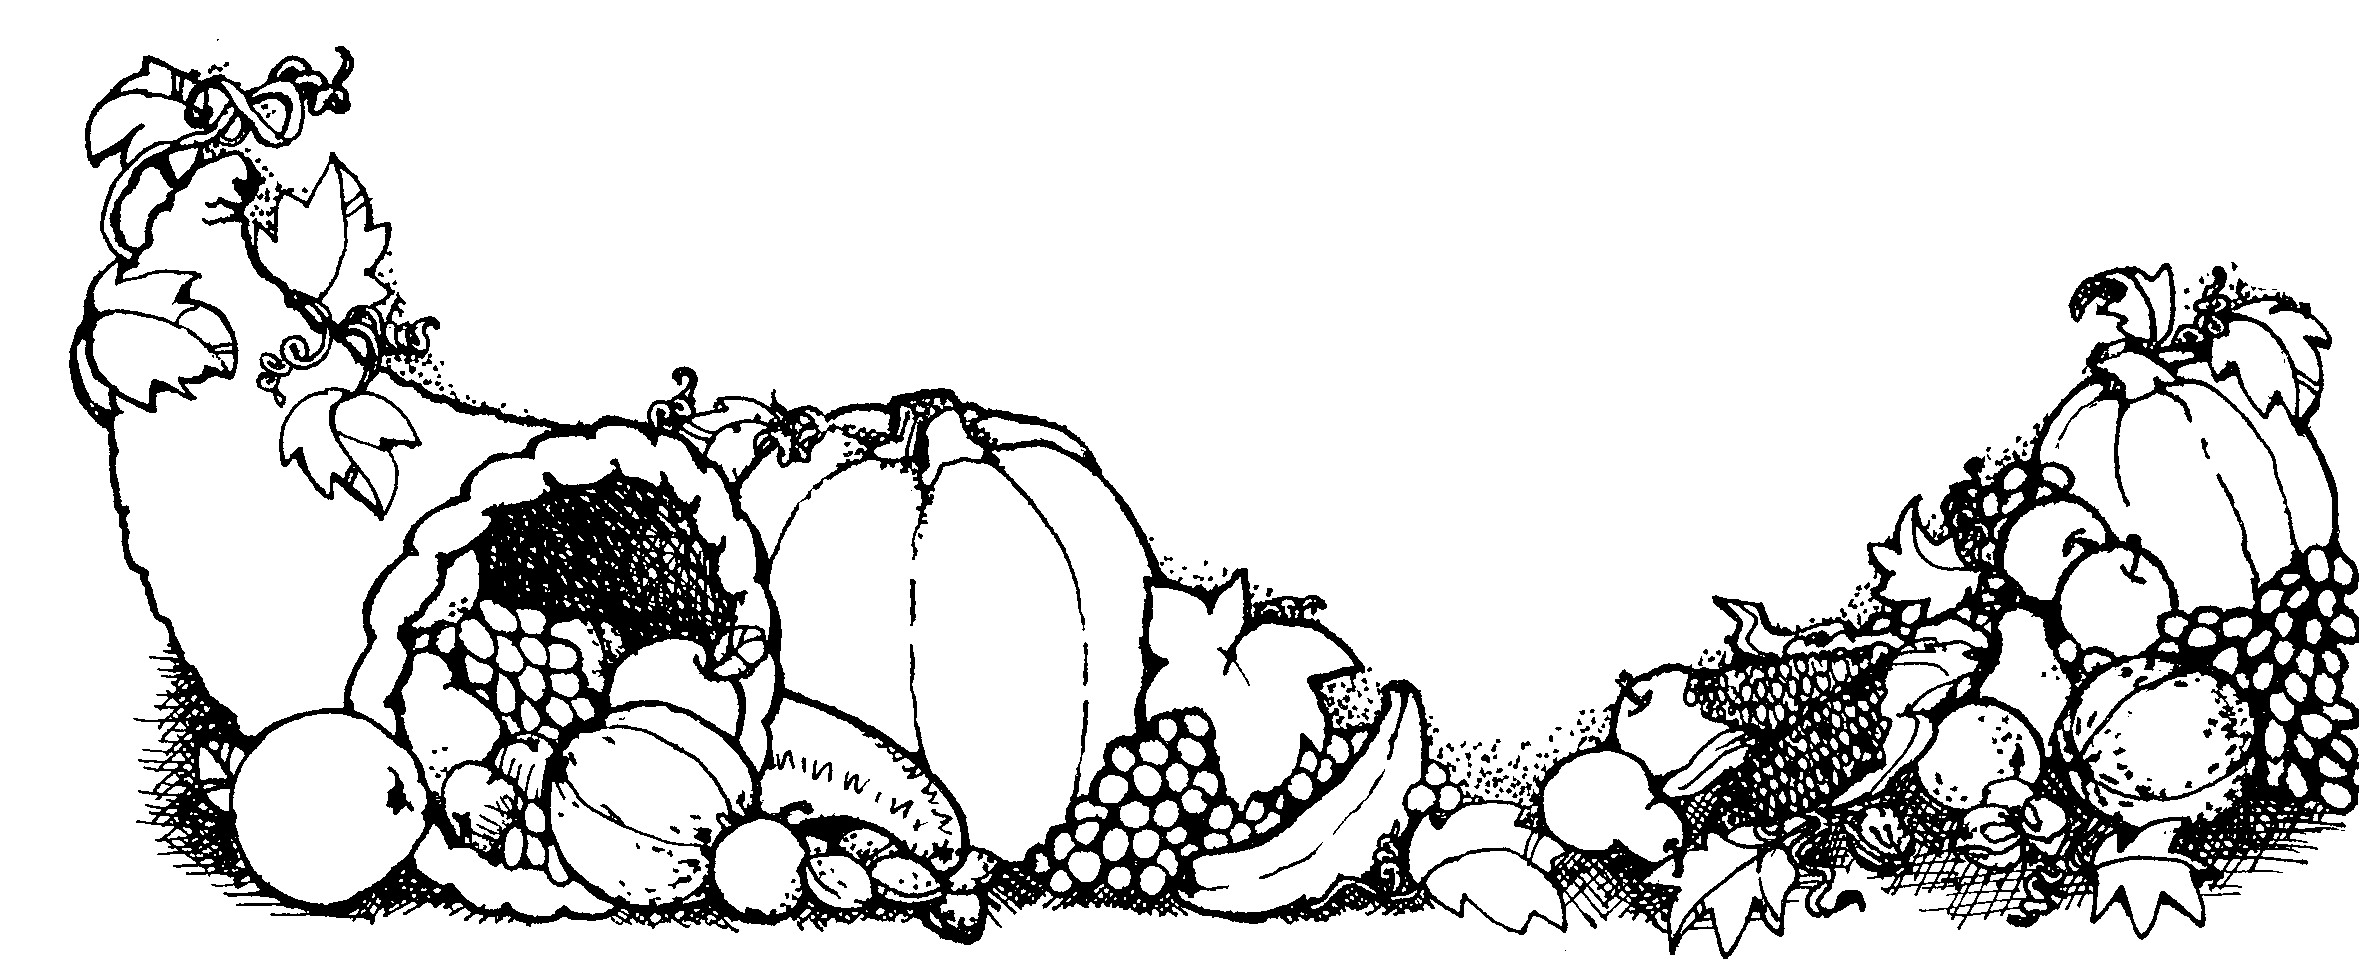 Free Black And White Thanksgiving Images, Download Free Clip.